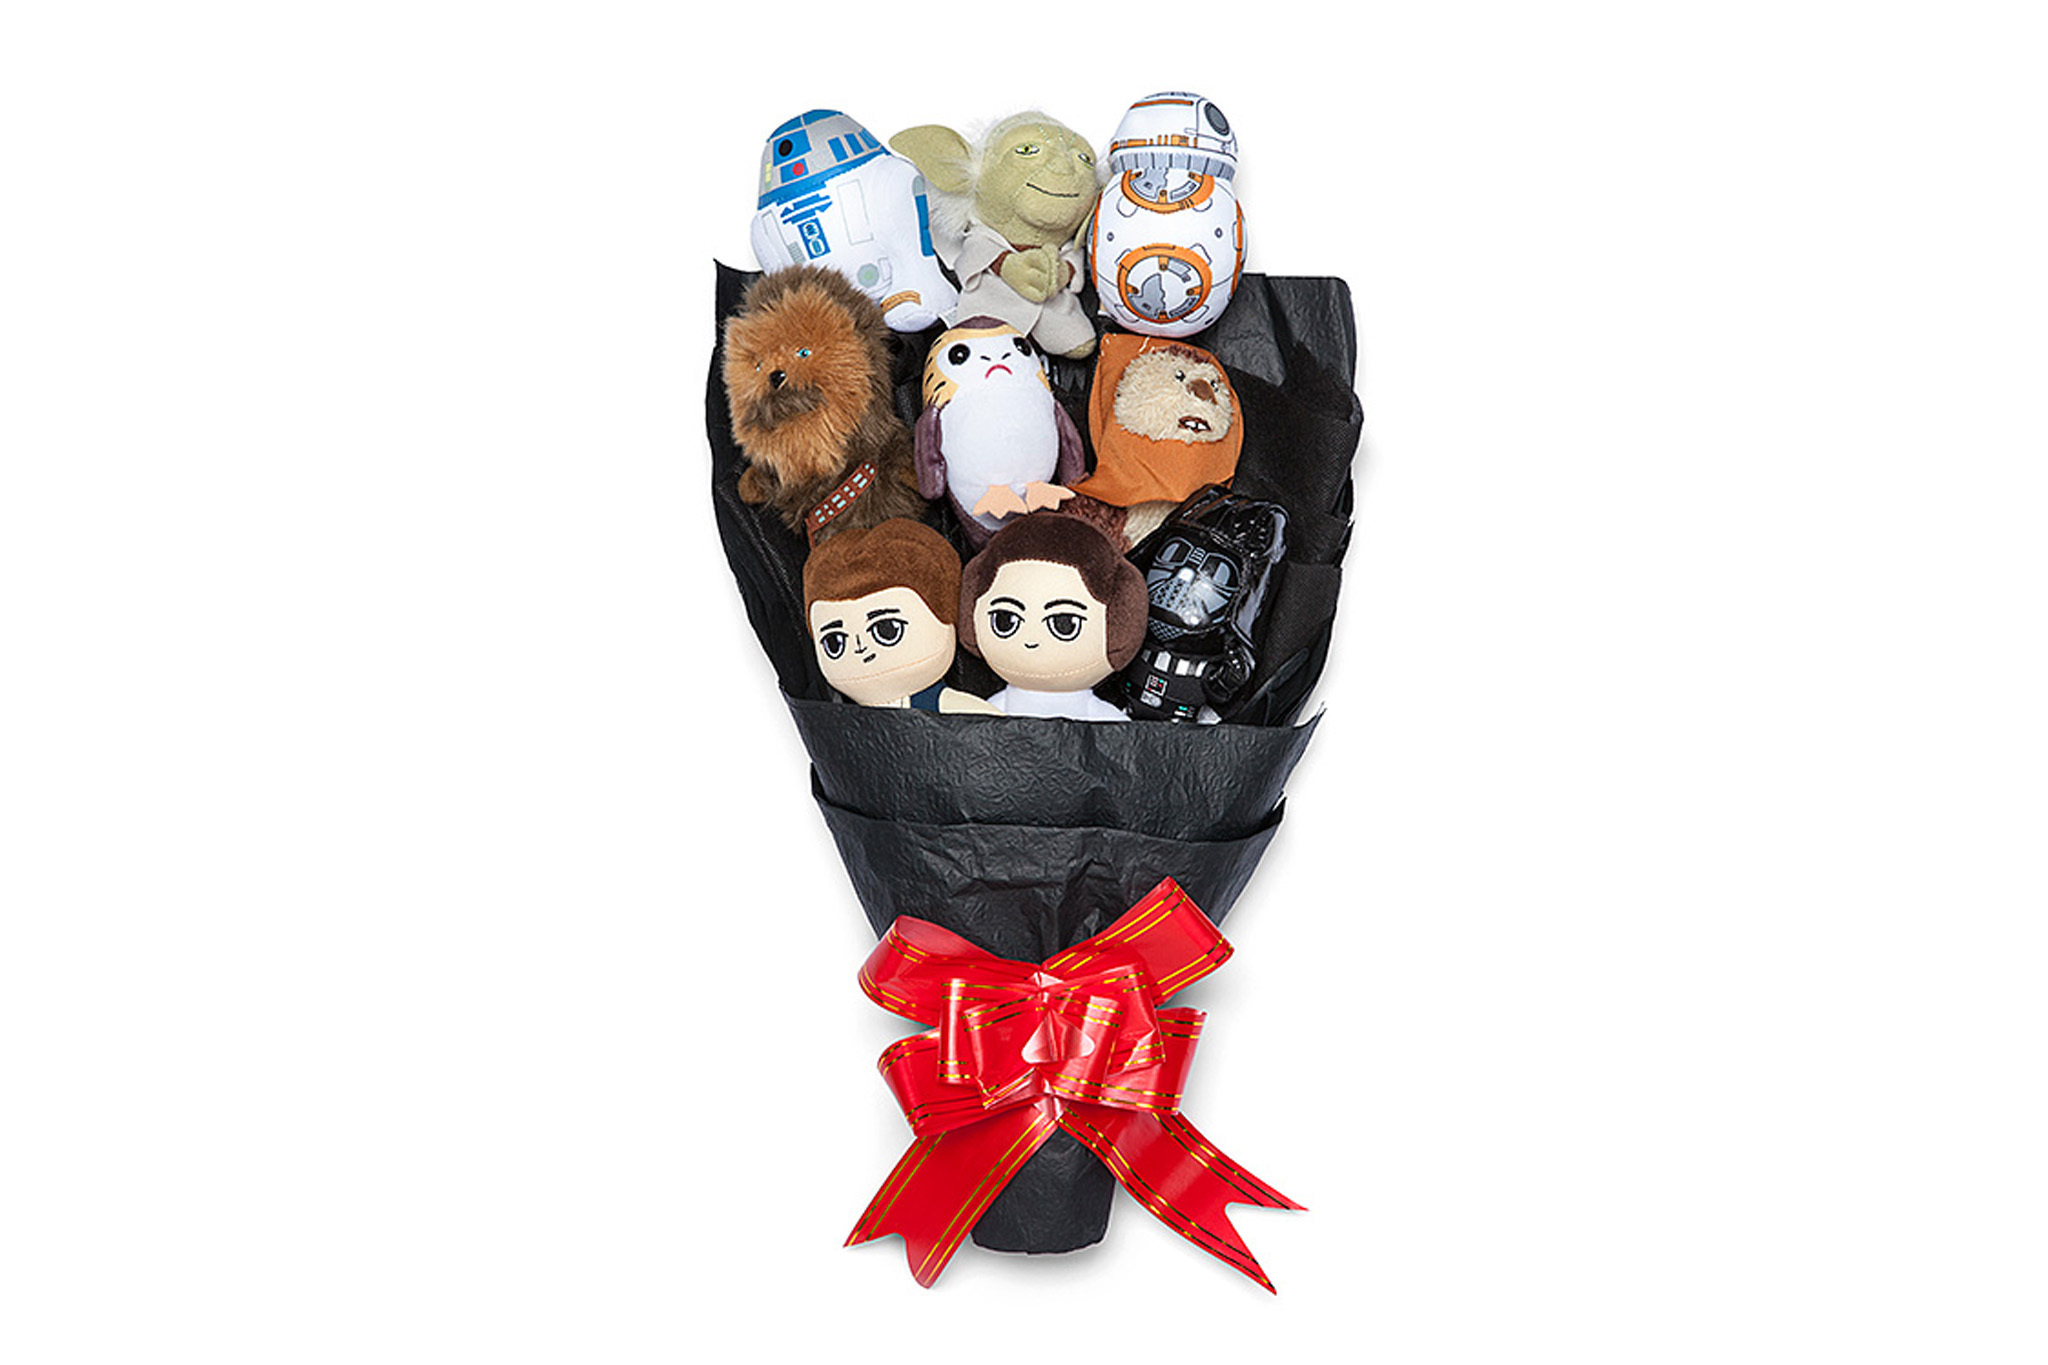 Star Wars Plush Bouquet 3.0